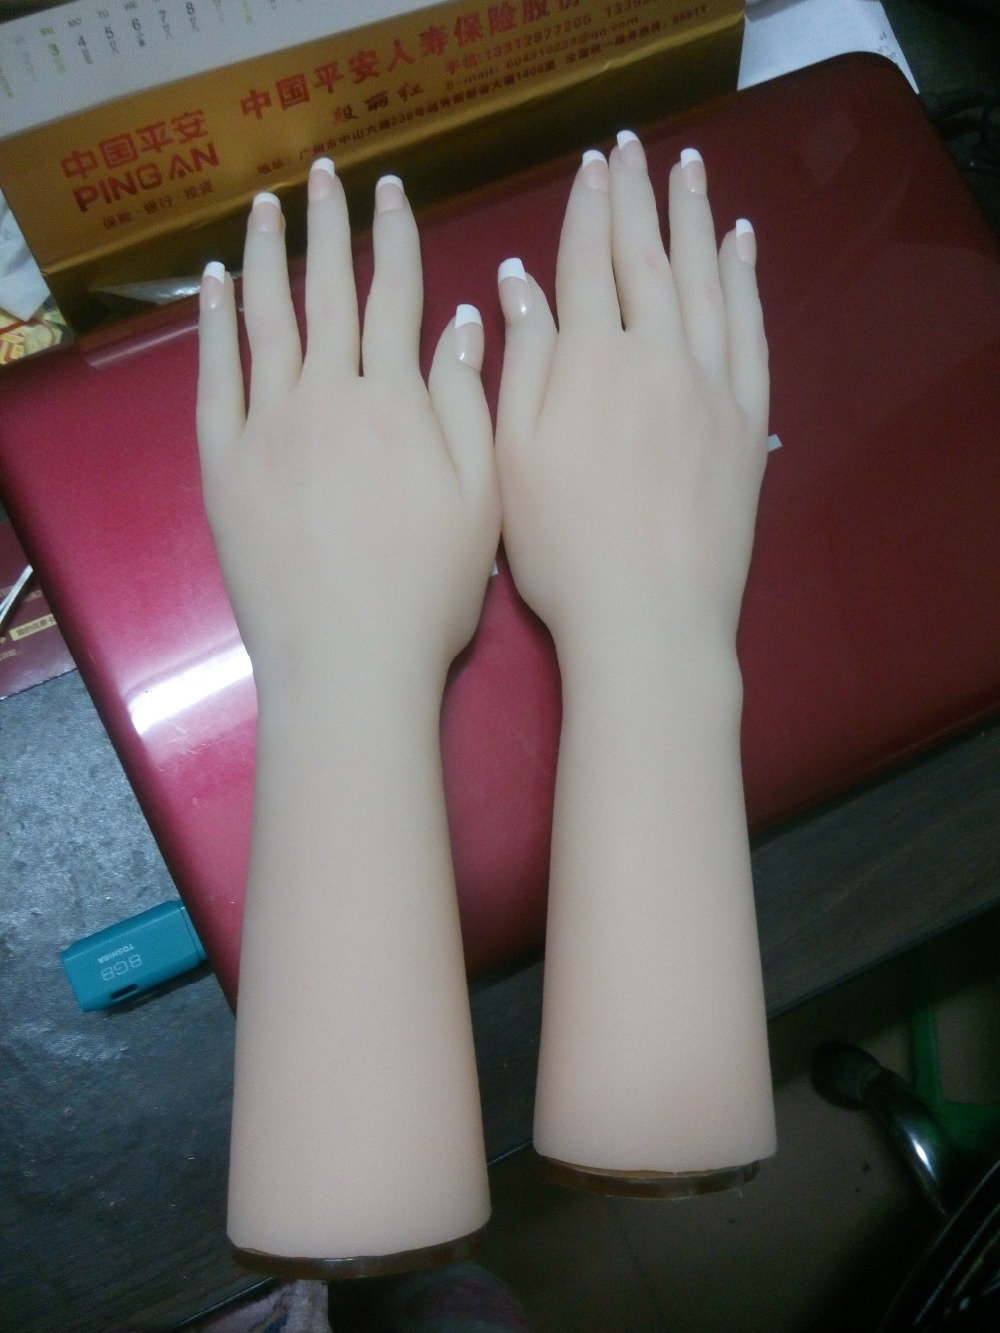 beautiful young girls hands to display, solid silicone hot woman woman hands with model of the nails and hands. ainhoa hands